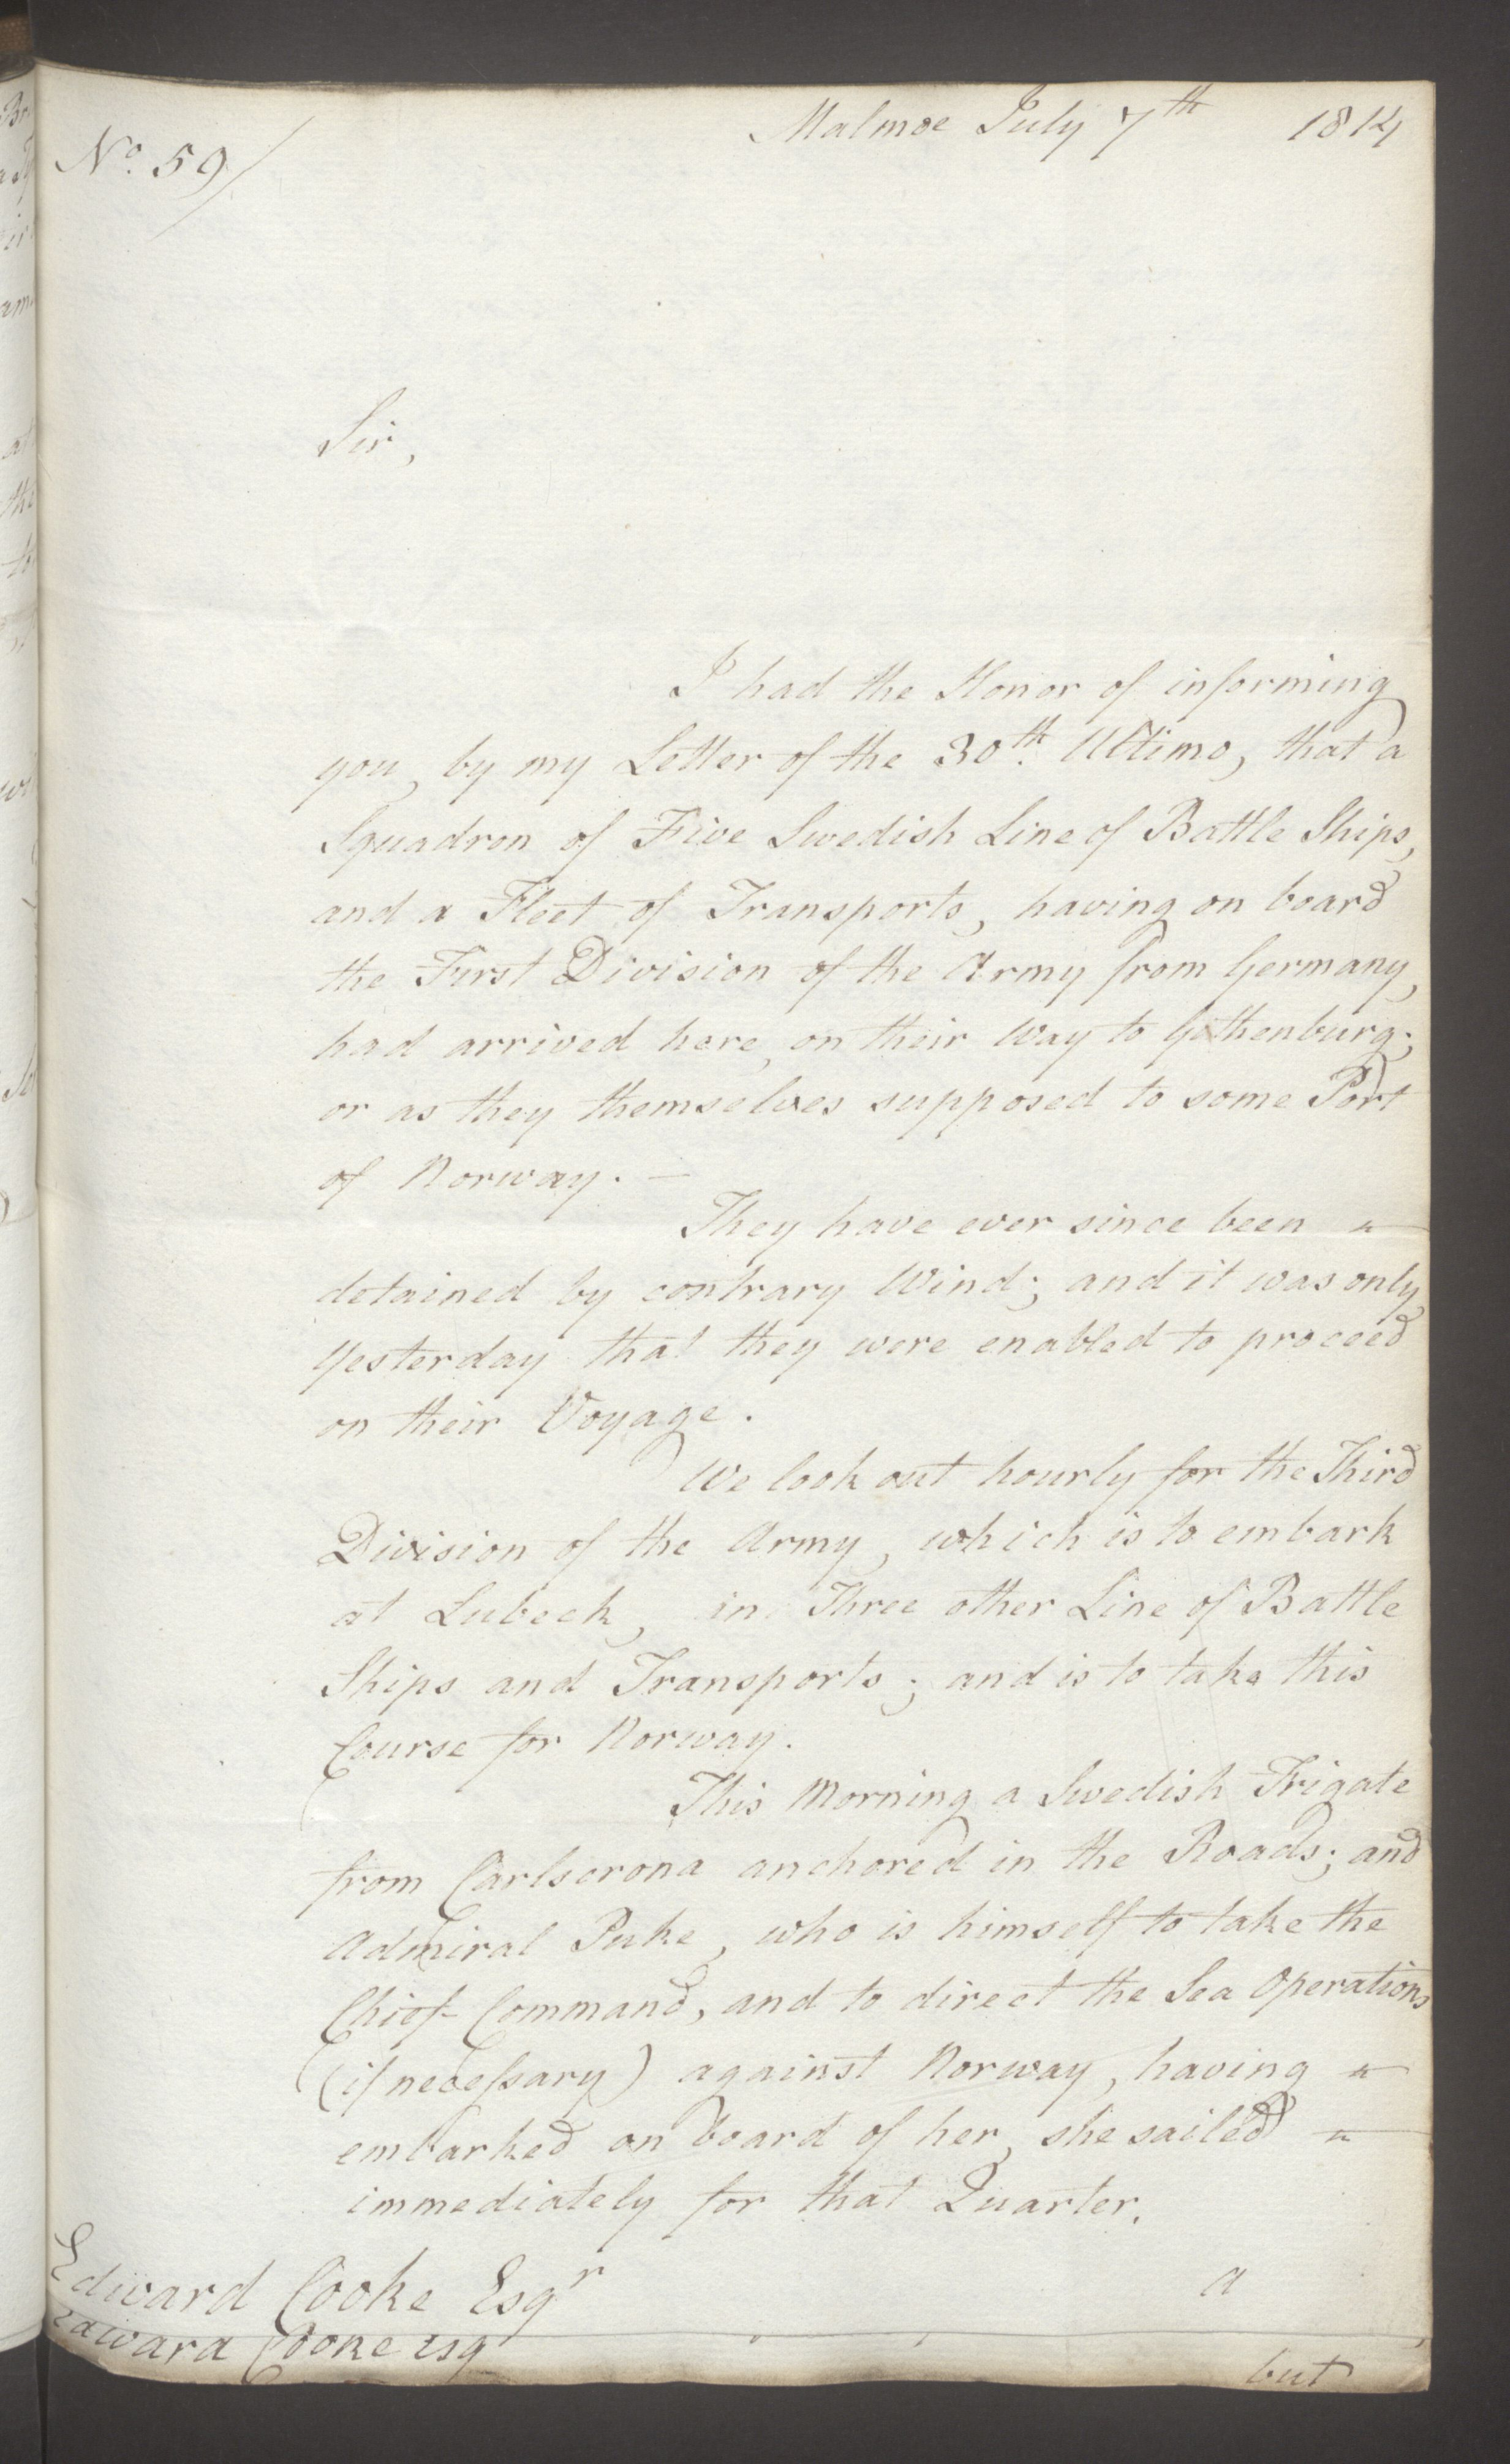 UKA, Foreign Office*, FO 38/16: Sir C. Gordon. Reports from Malmö, Jonkoping, and Helsingborg, 1814, s. 71